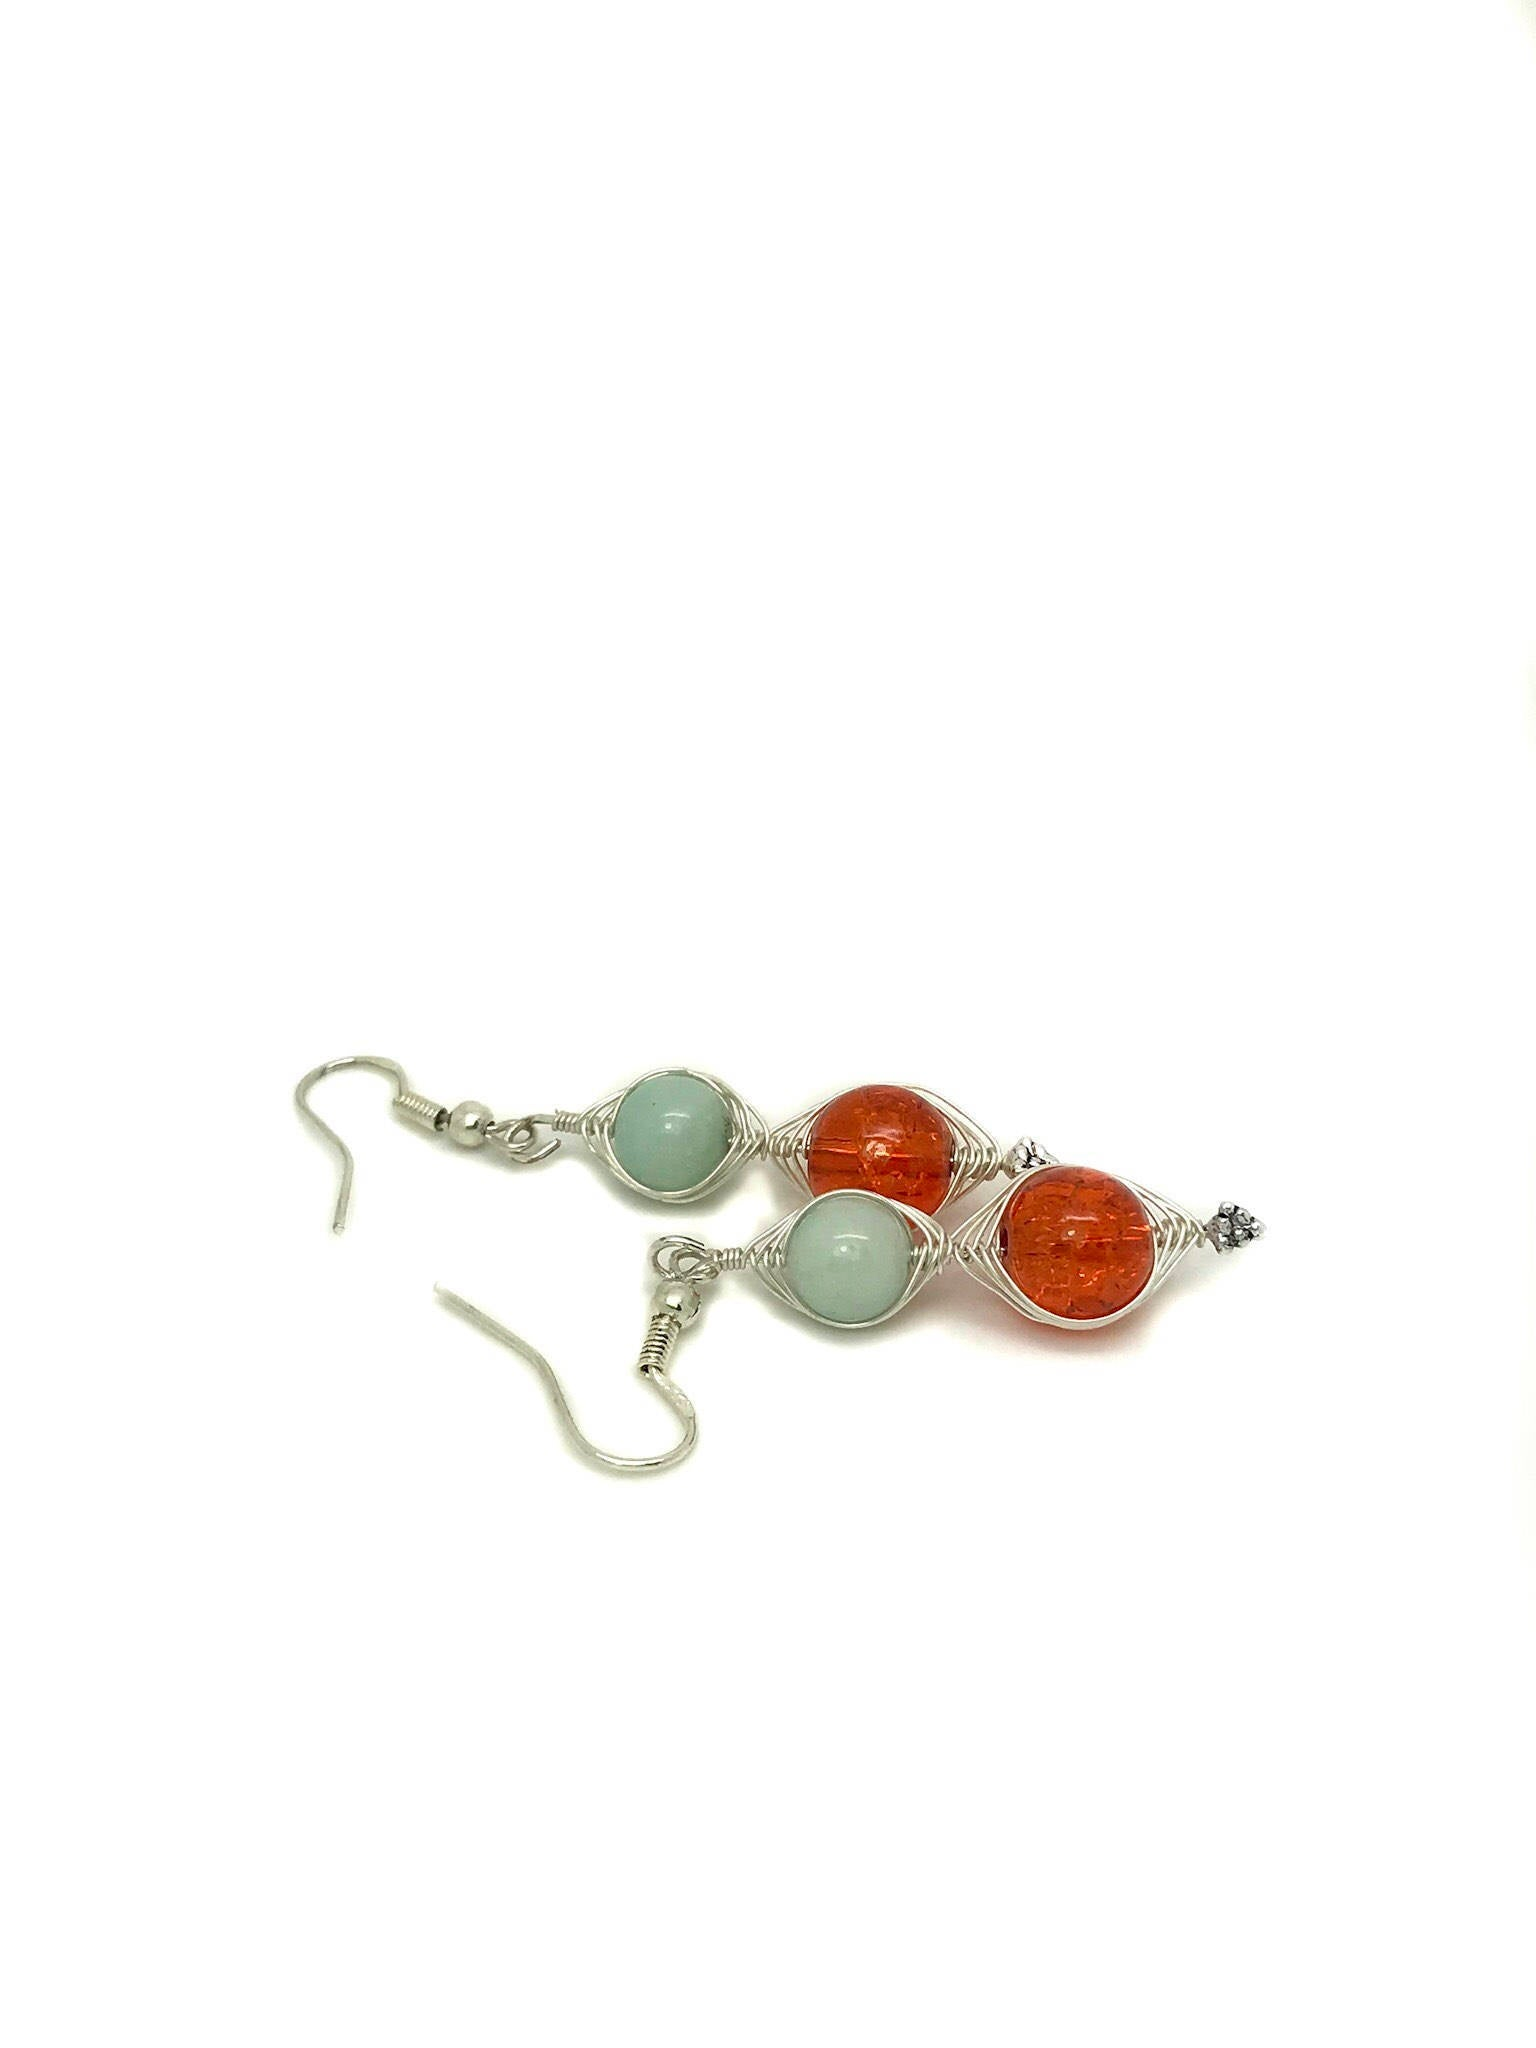 Orange and Light Blue Wire Wrapping Earrings, Light Green and Orange Sterling Silver Handcrafted Earrings, Wire Wrapping Jewelry